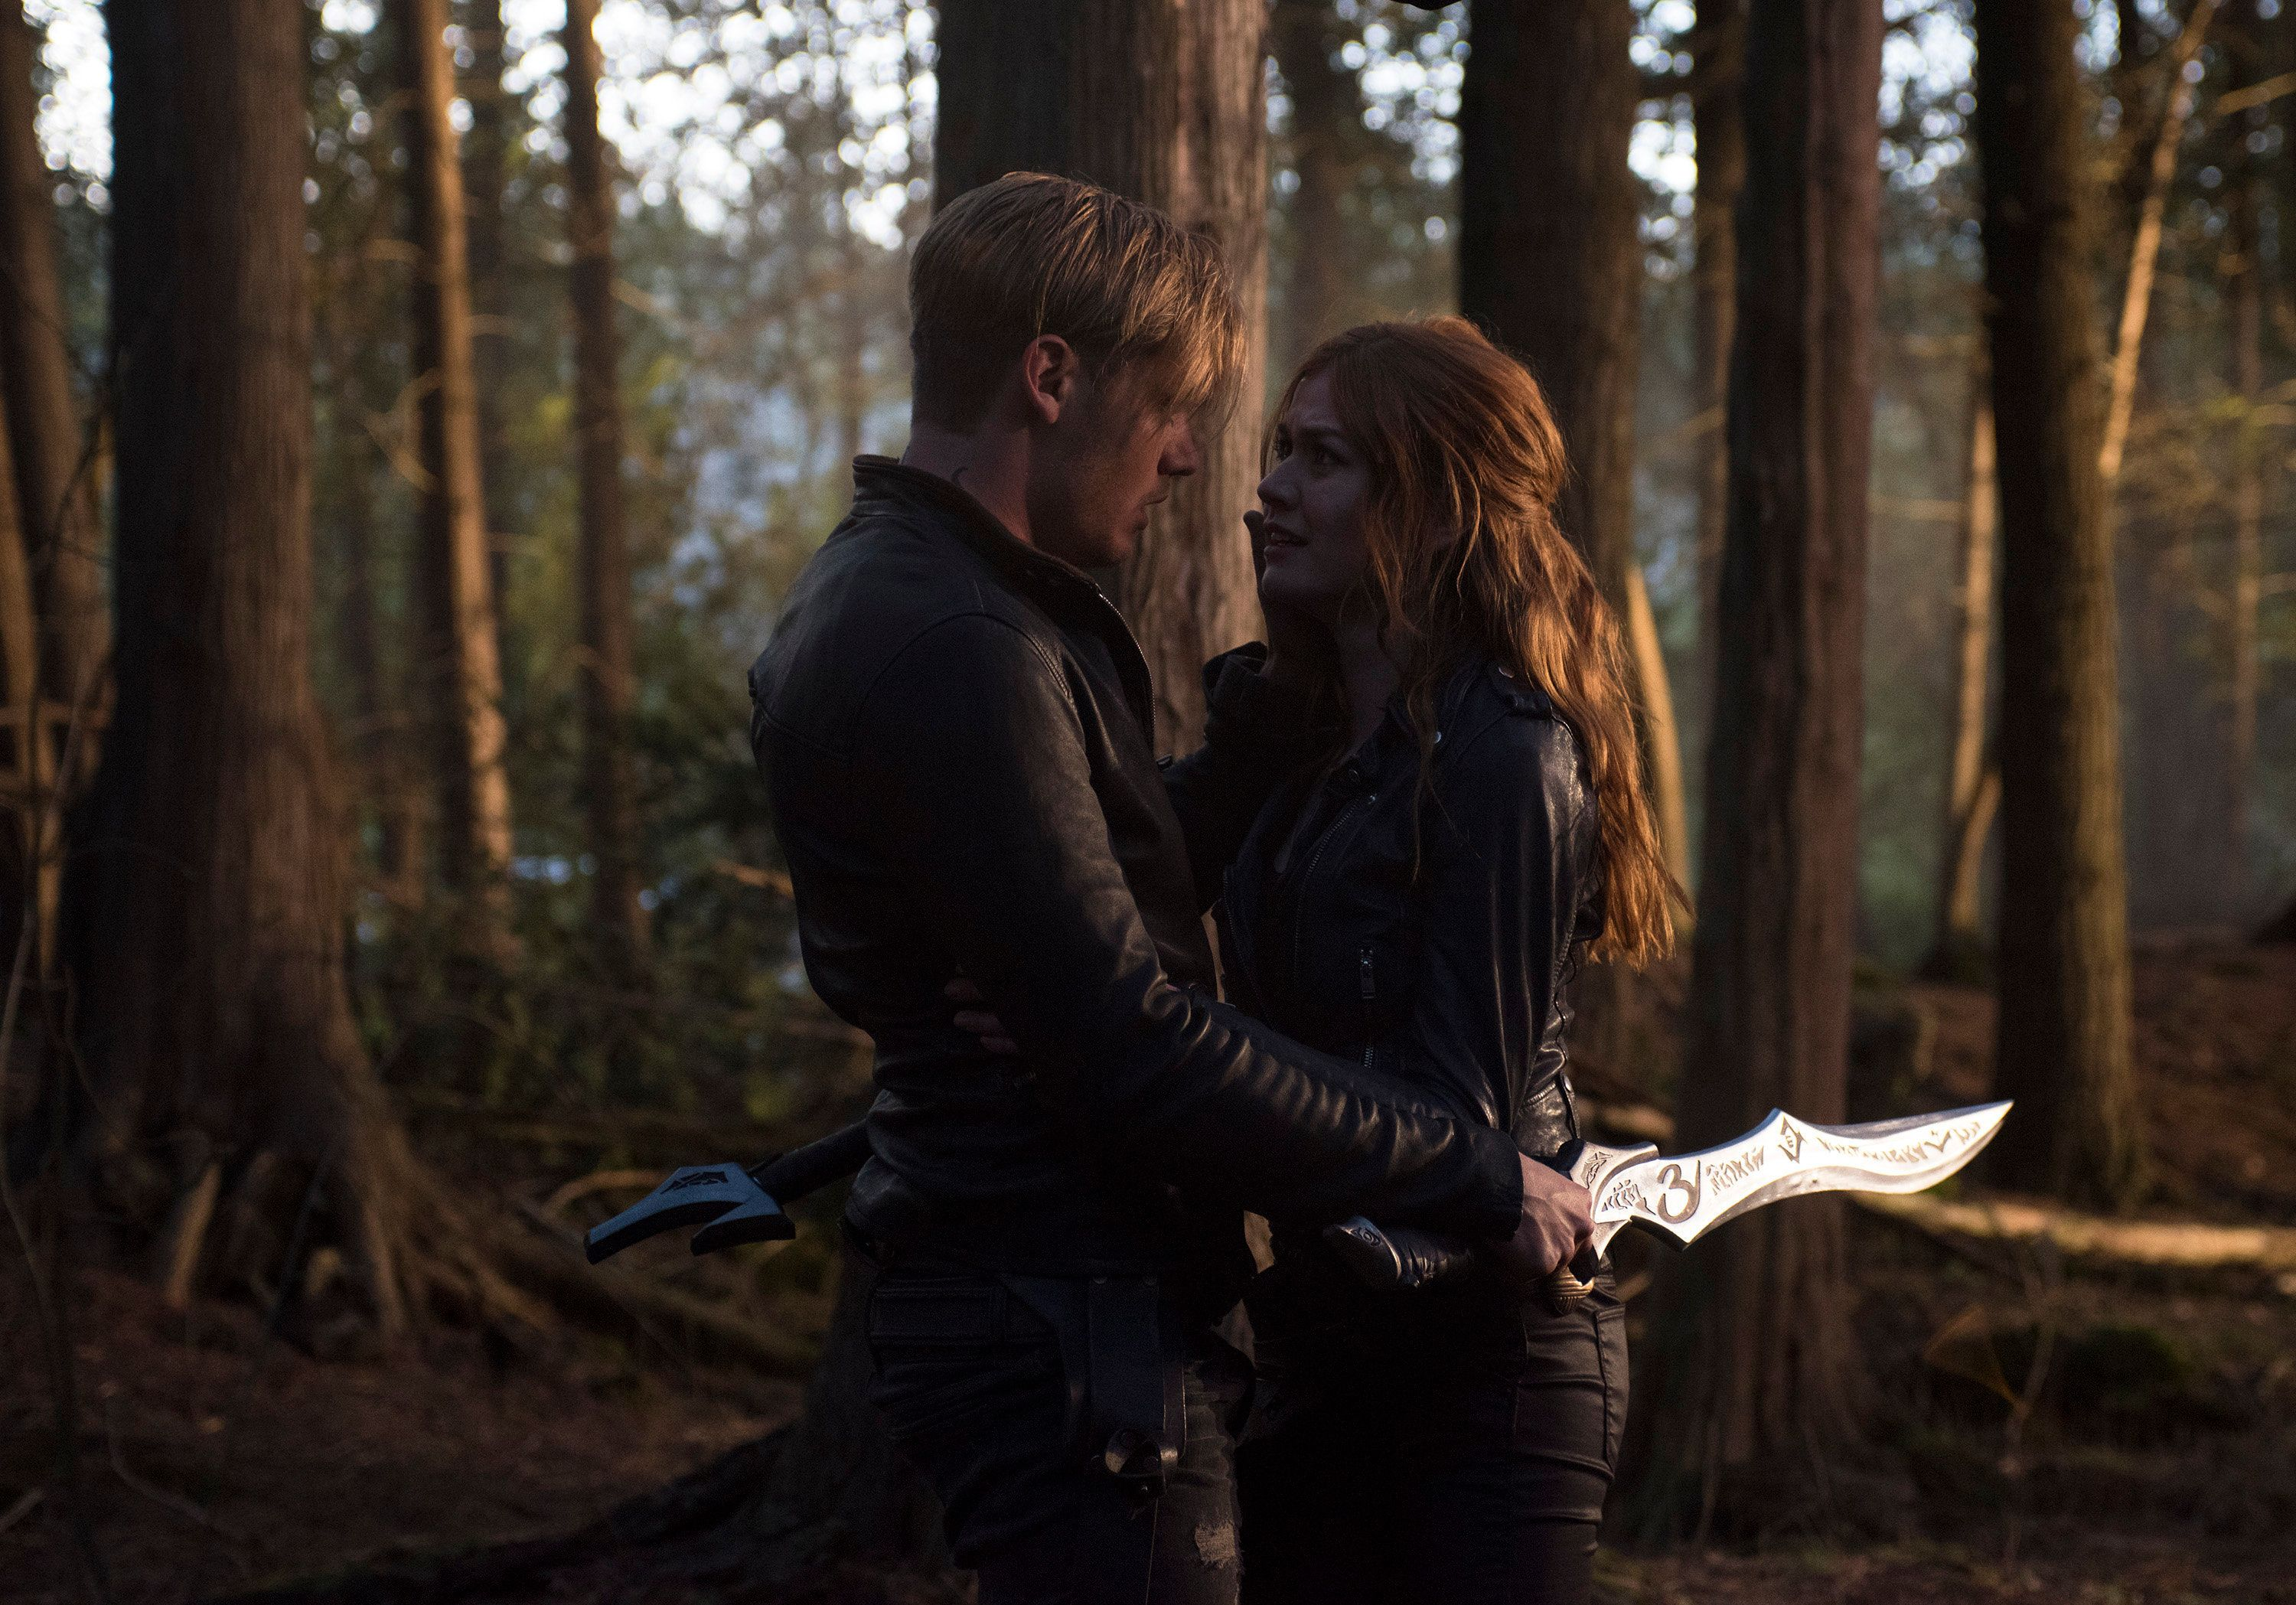 SHADOWHUNTERS - �Beside Still Water� - Shadowhunters are divided as Alec and Isabelle battle a swarm of demons attacking the city, as Jace and Clary must head to make a final stand in �Beside Still Water,� the season finale of �Shadowhunters� airing on Monday, Aug. 14th at 8:00 - 9:00 PM ET/PT. (Freeform/John Medland)DOMINIC SHERWOOD, KATHERINE MCNAMARA